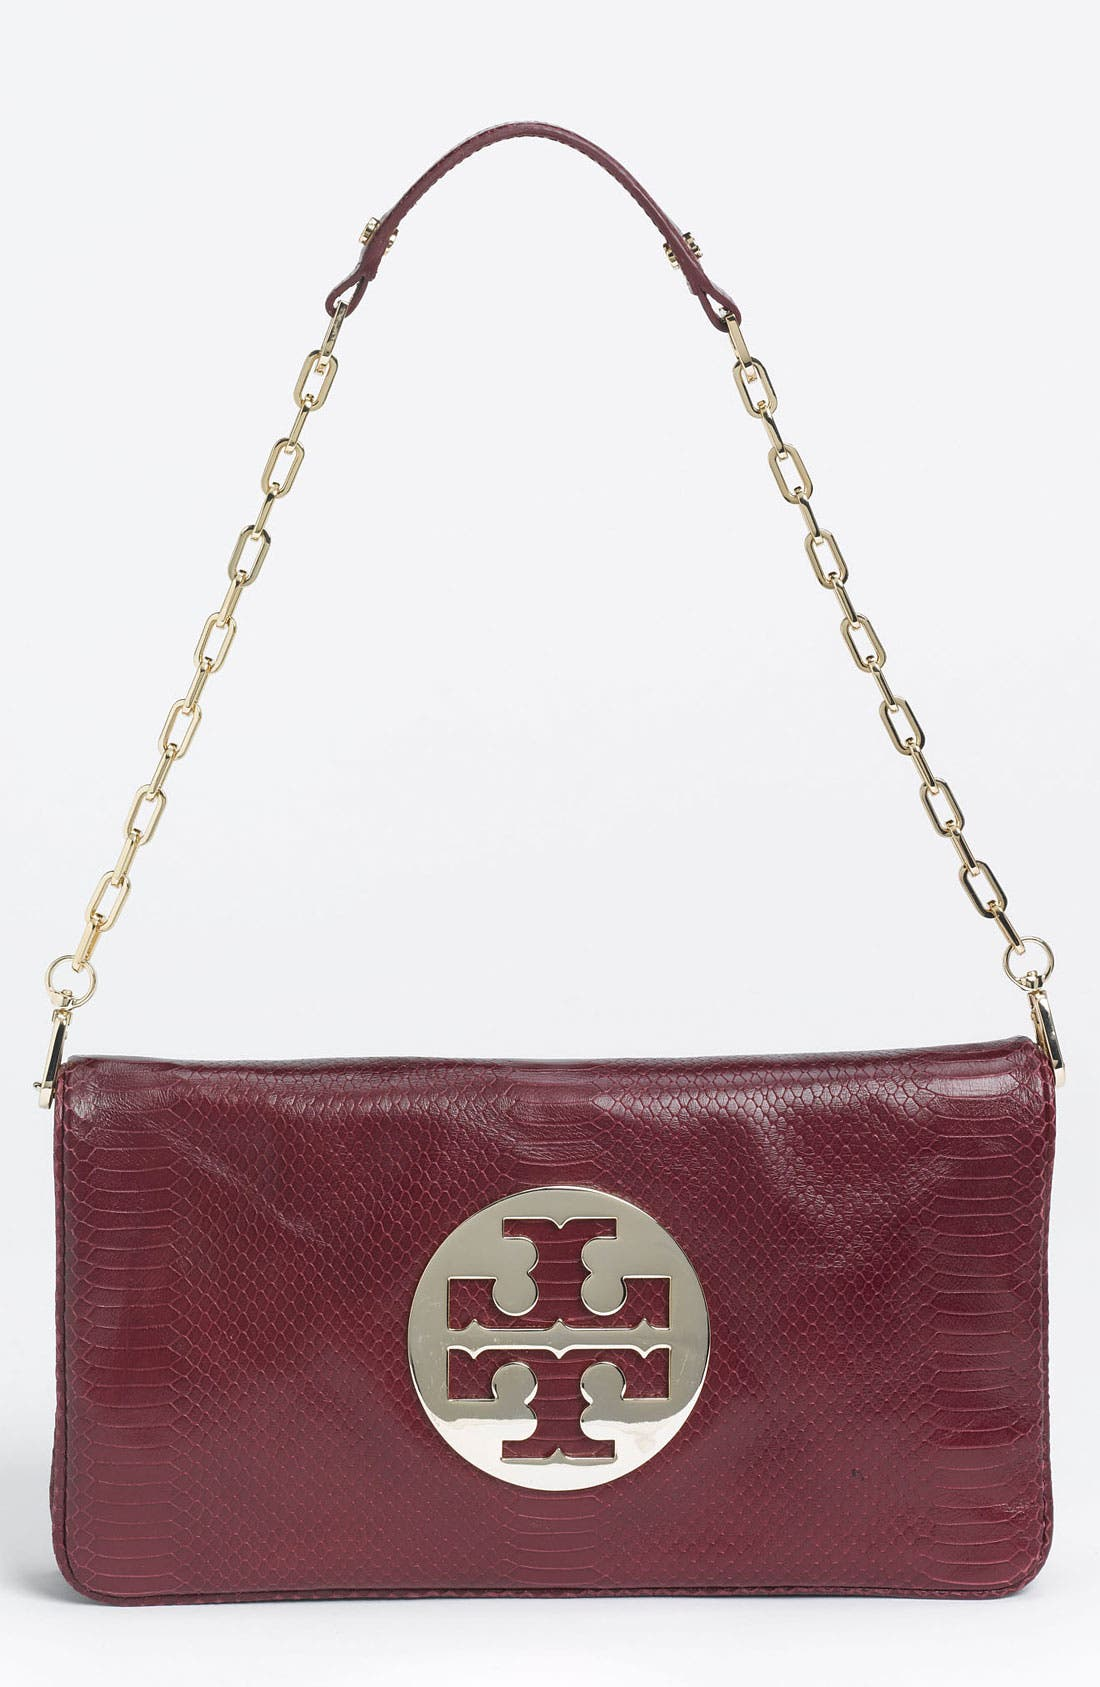 Main Image - Tory Burch 'Reve' Snake Embossed Clutch